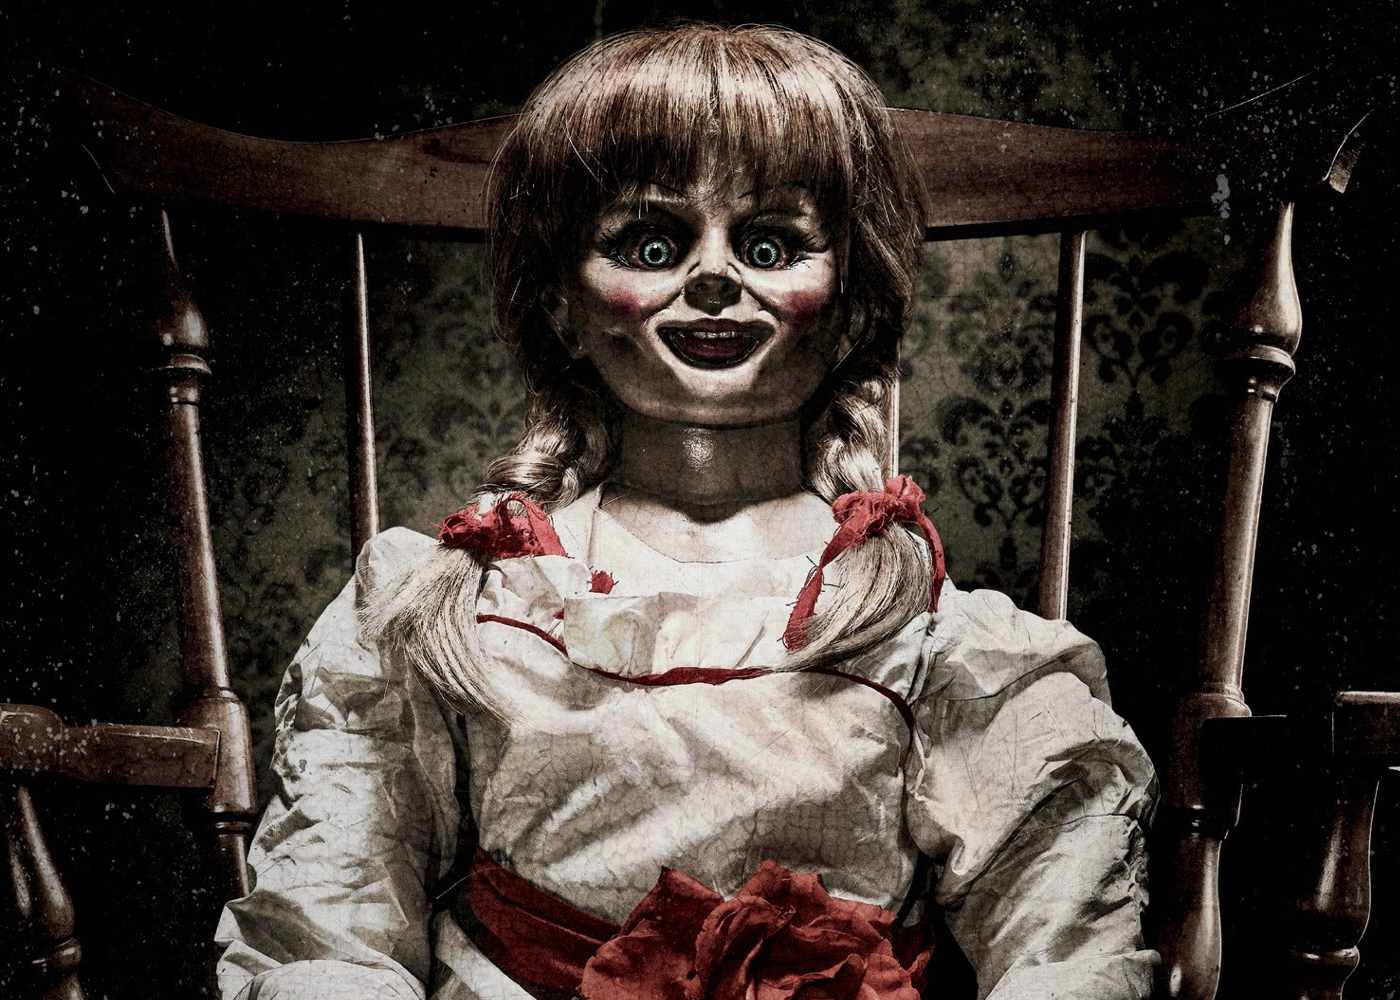 Box-Office Report – Annabelle: Creation Scares Up $35m+ for Number One Spot